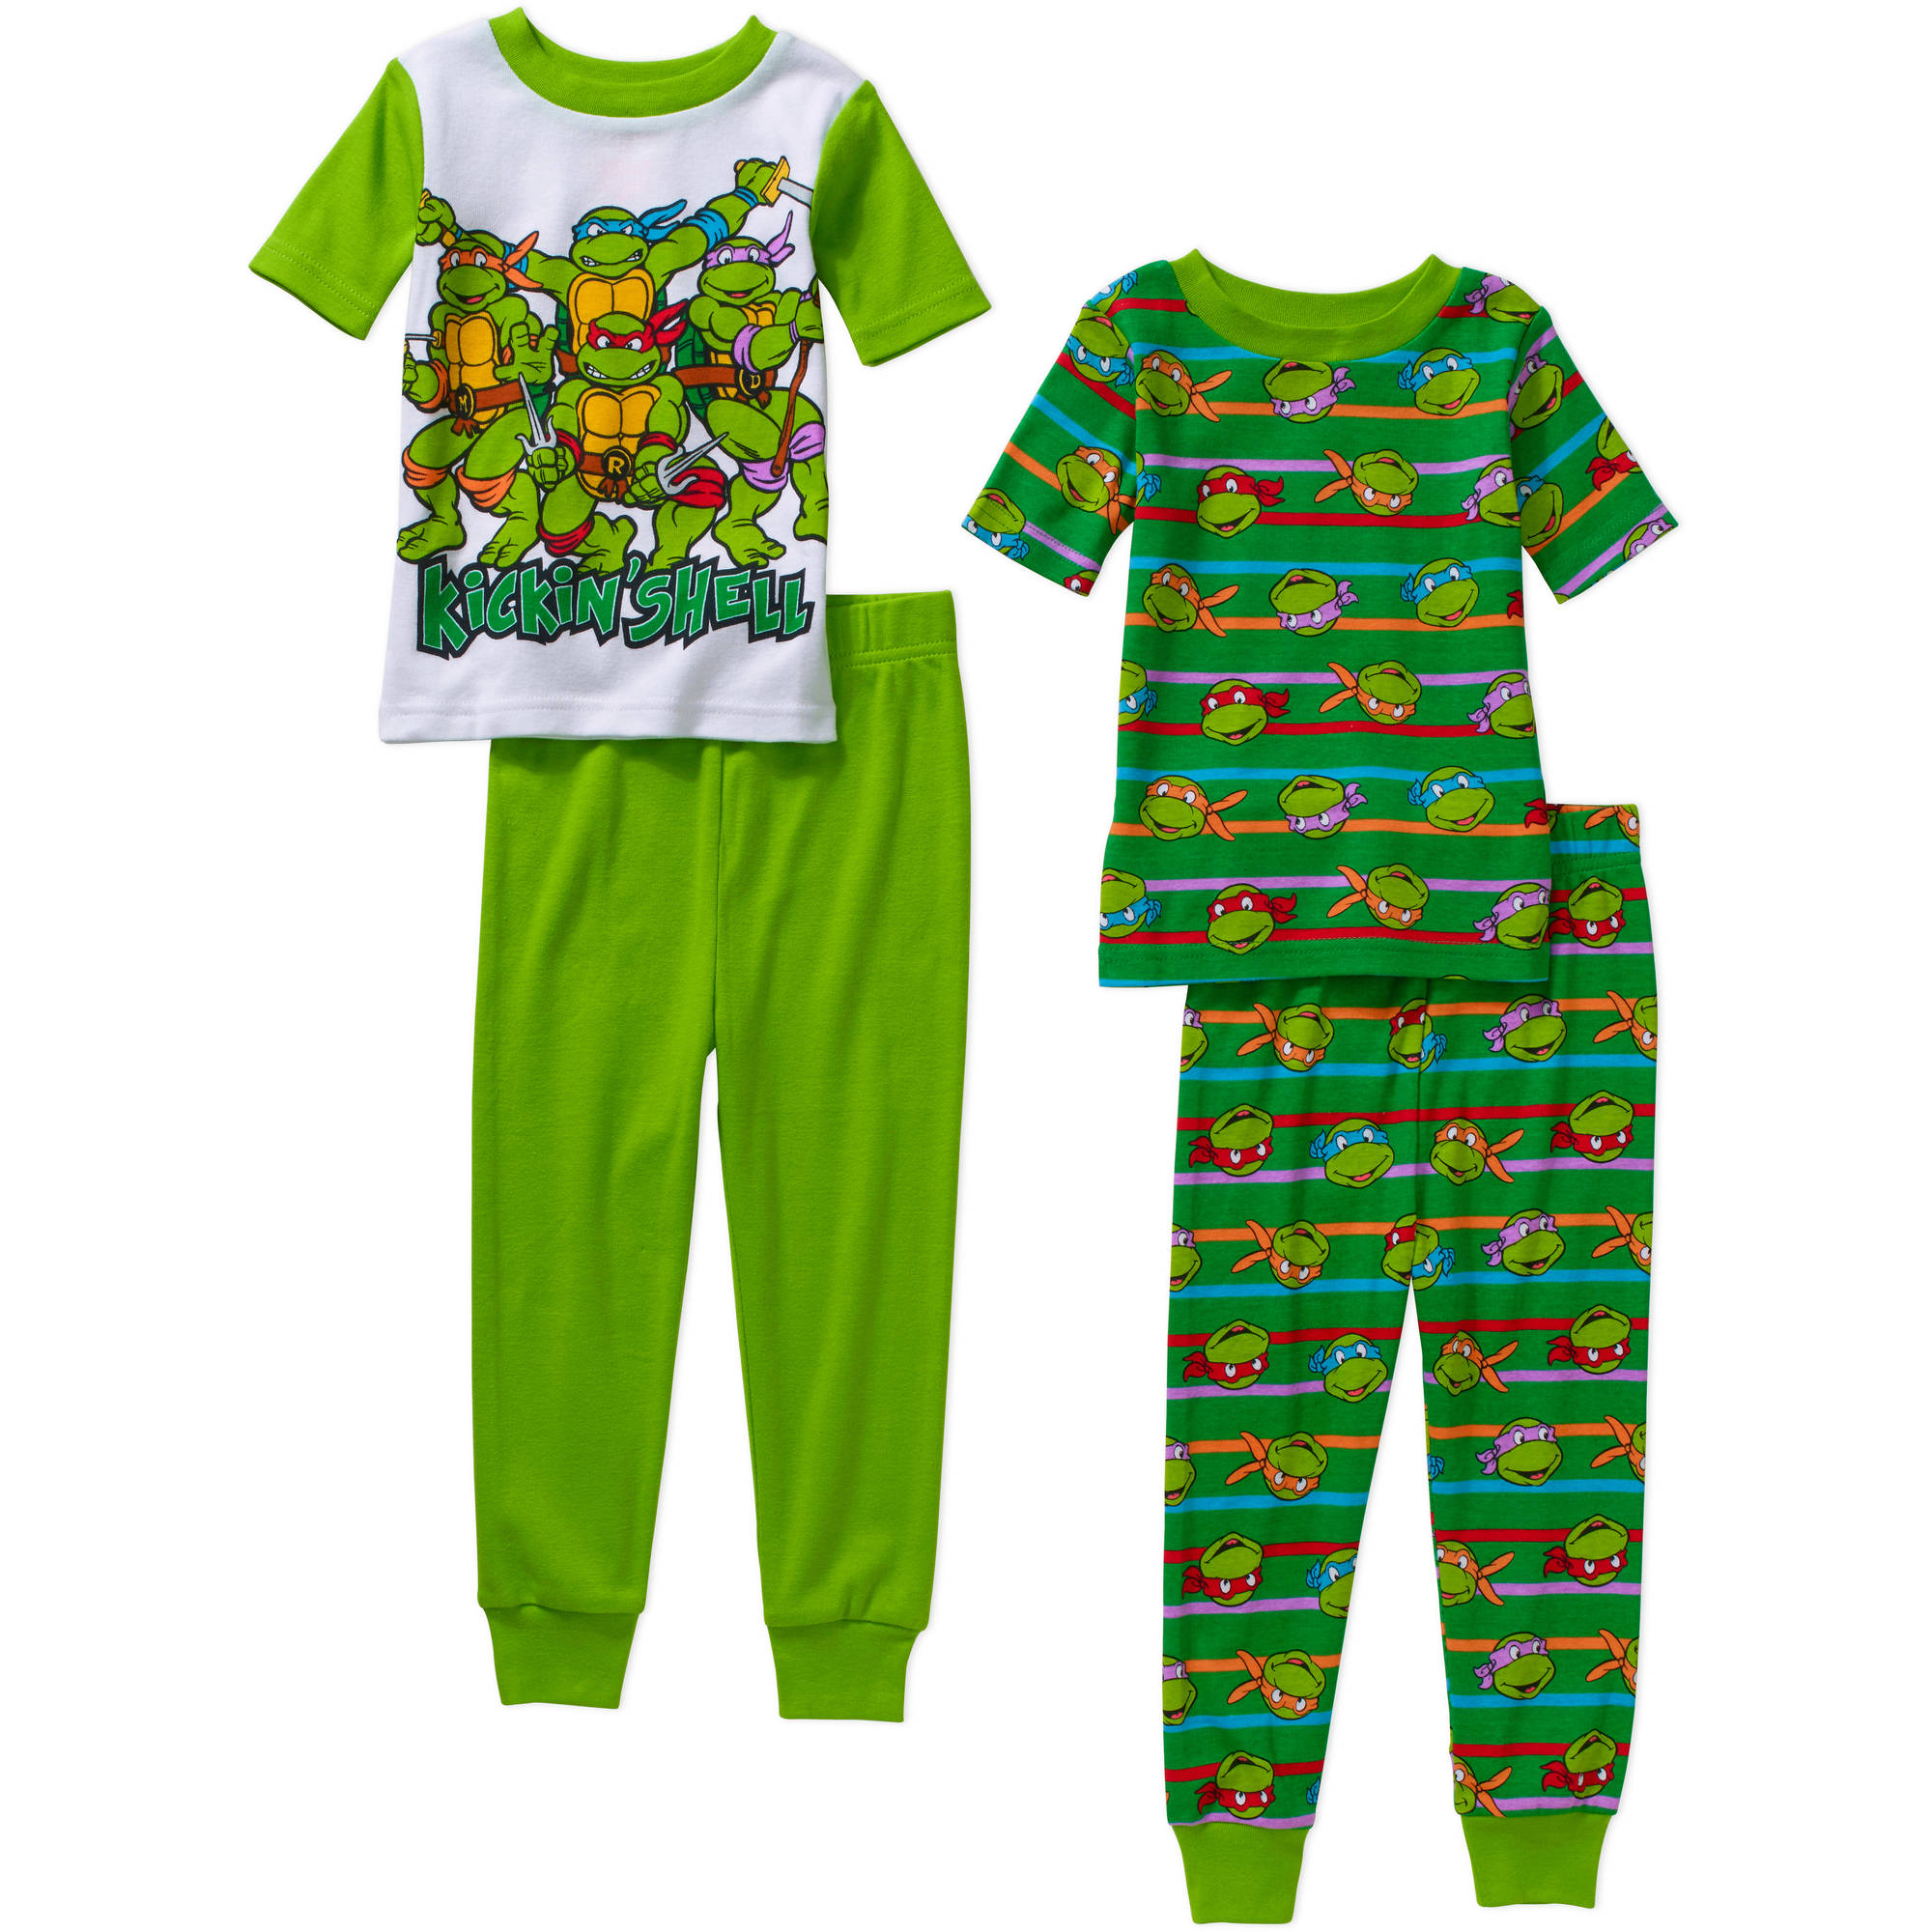 Teenage Mutant Ninja Turtles Toddler Boys' Cotton Tight Fit Short Sleeve Sleep Set, 4-Pieces